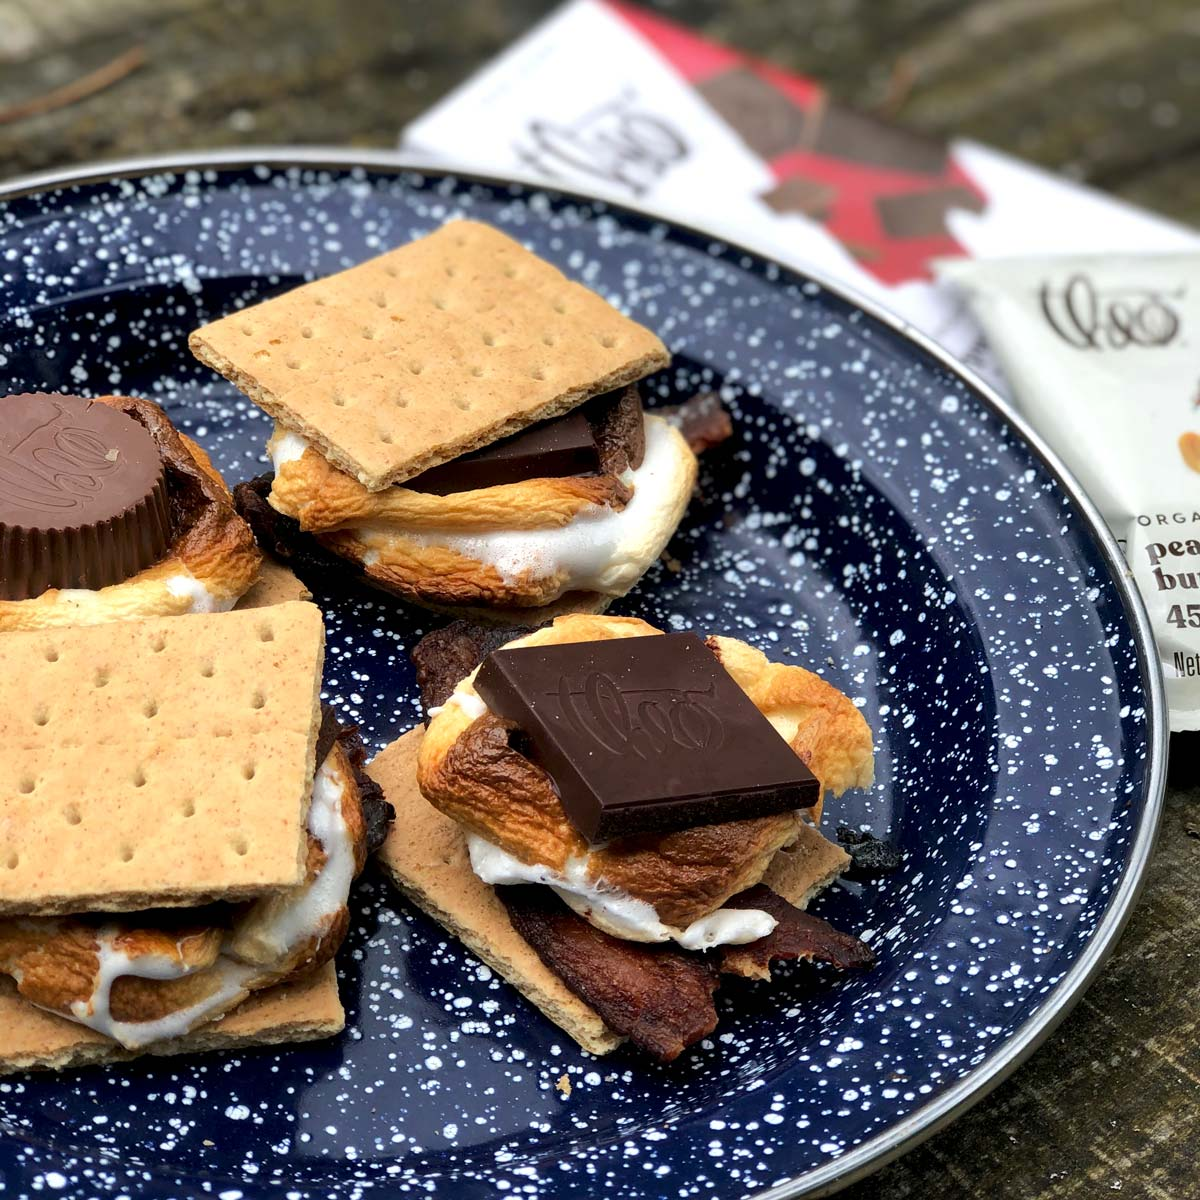 Candied Bacon & Dark Chocolate S'more